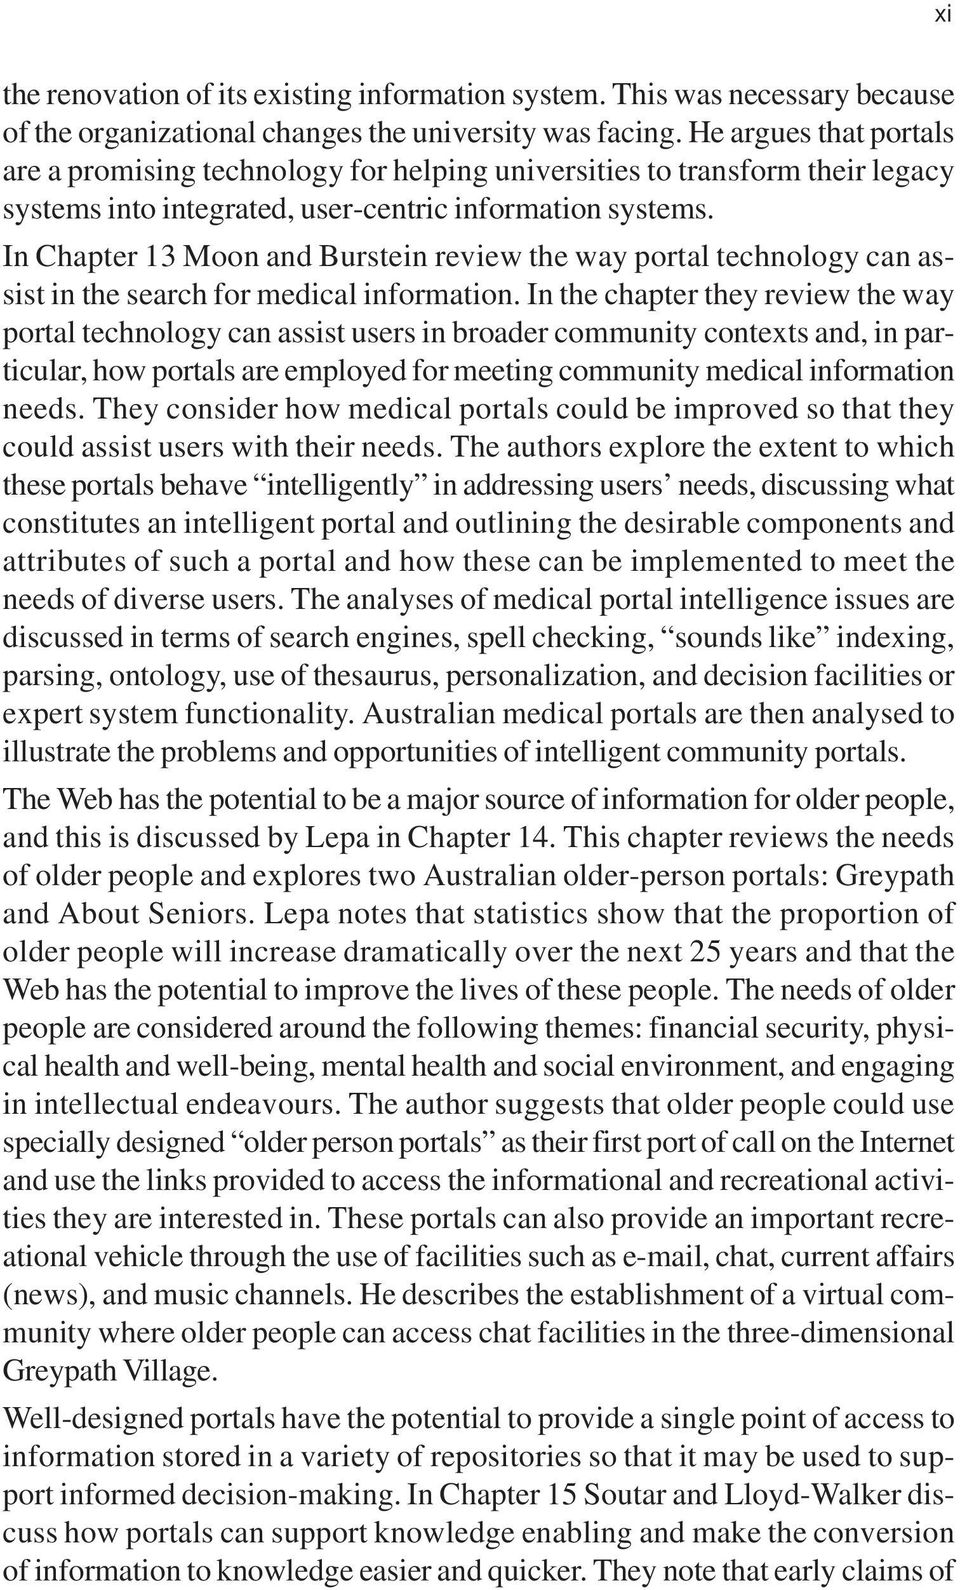 In Chapter 13 Moon and Burstein review the way portal technology can assist in the search for medical information.